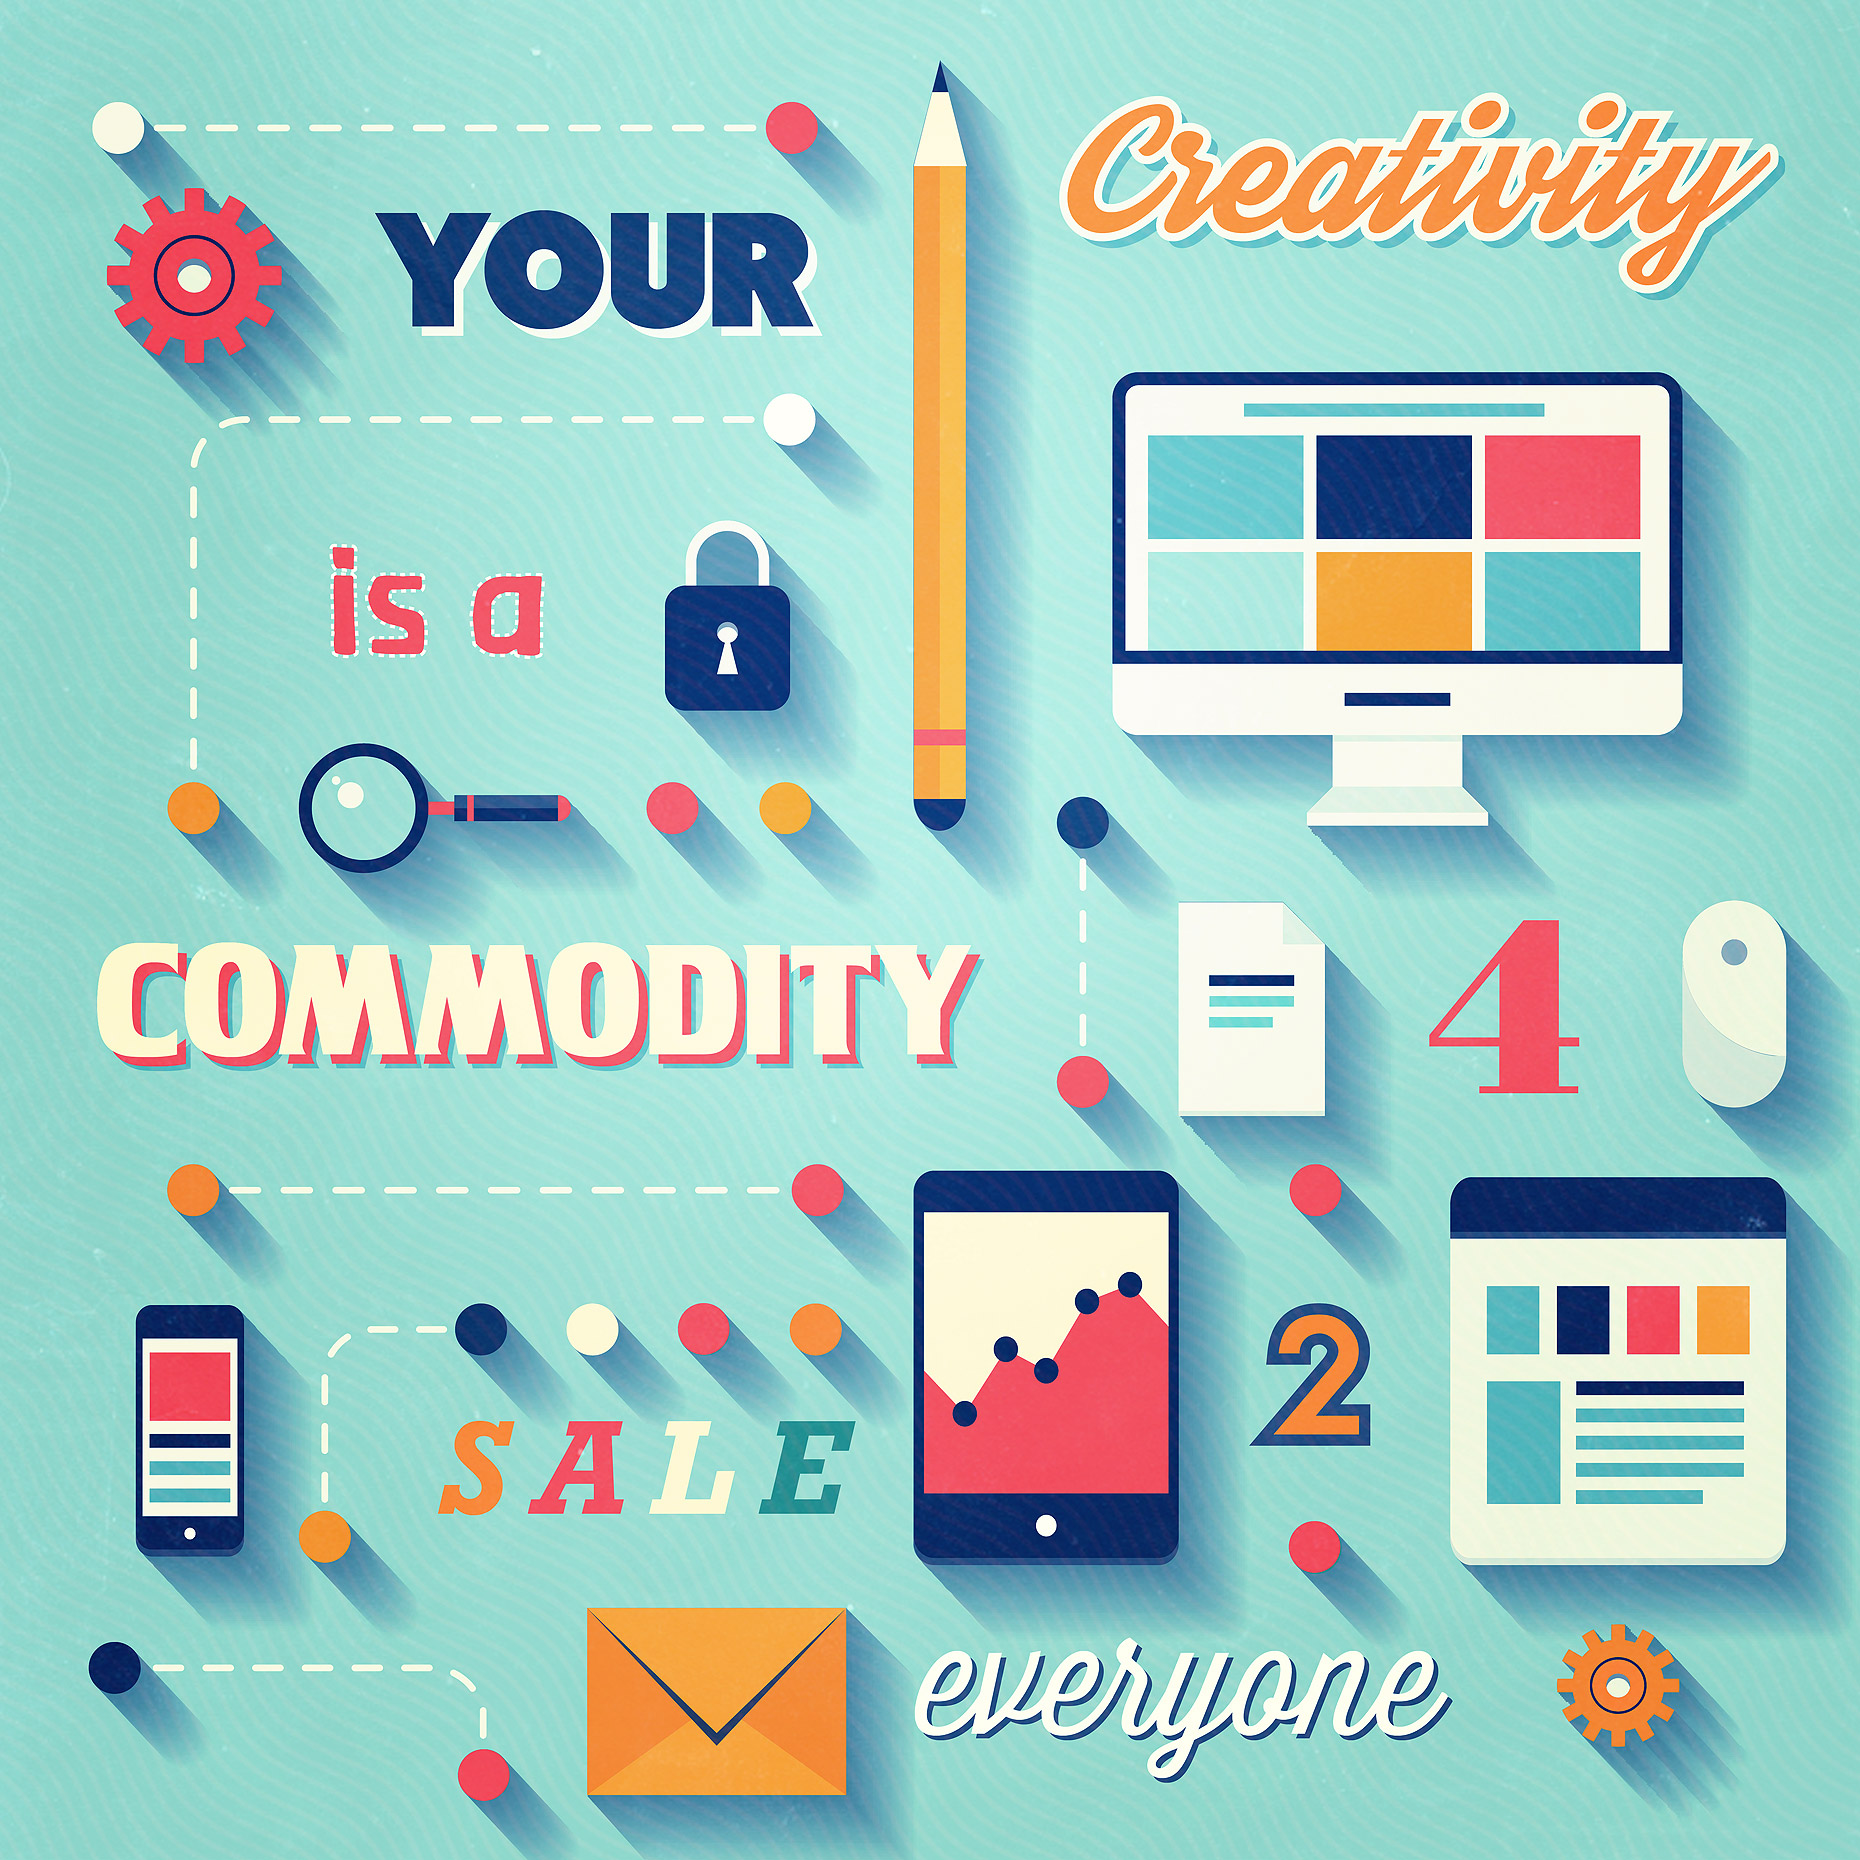 creativity-is-commodity